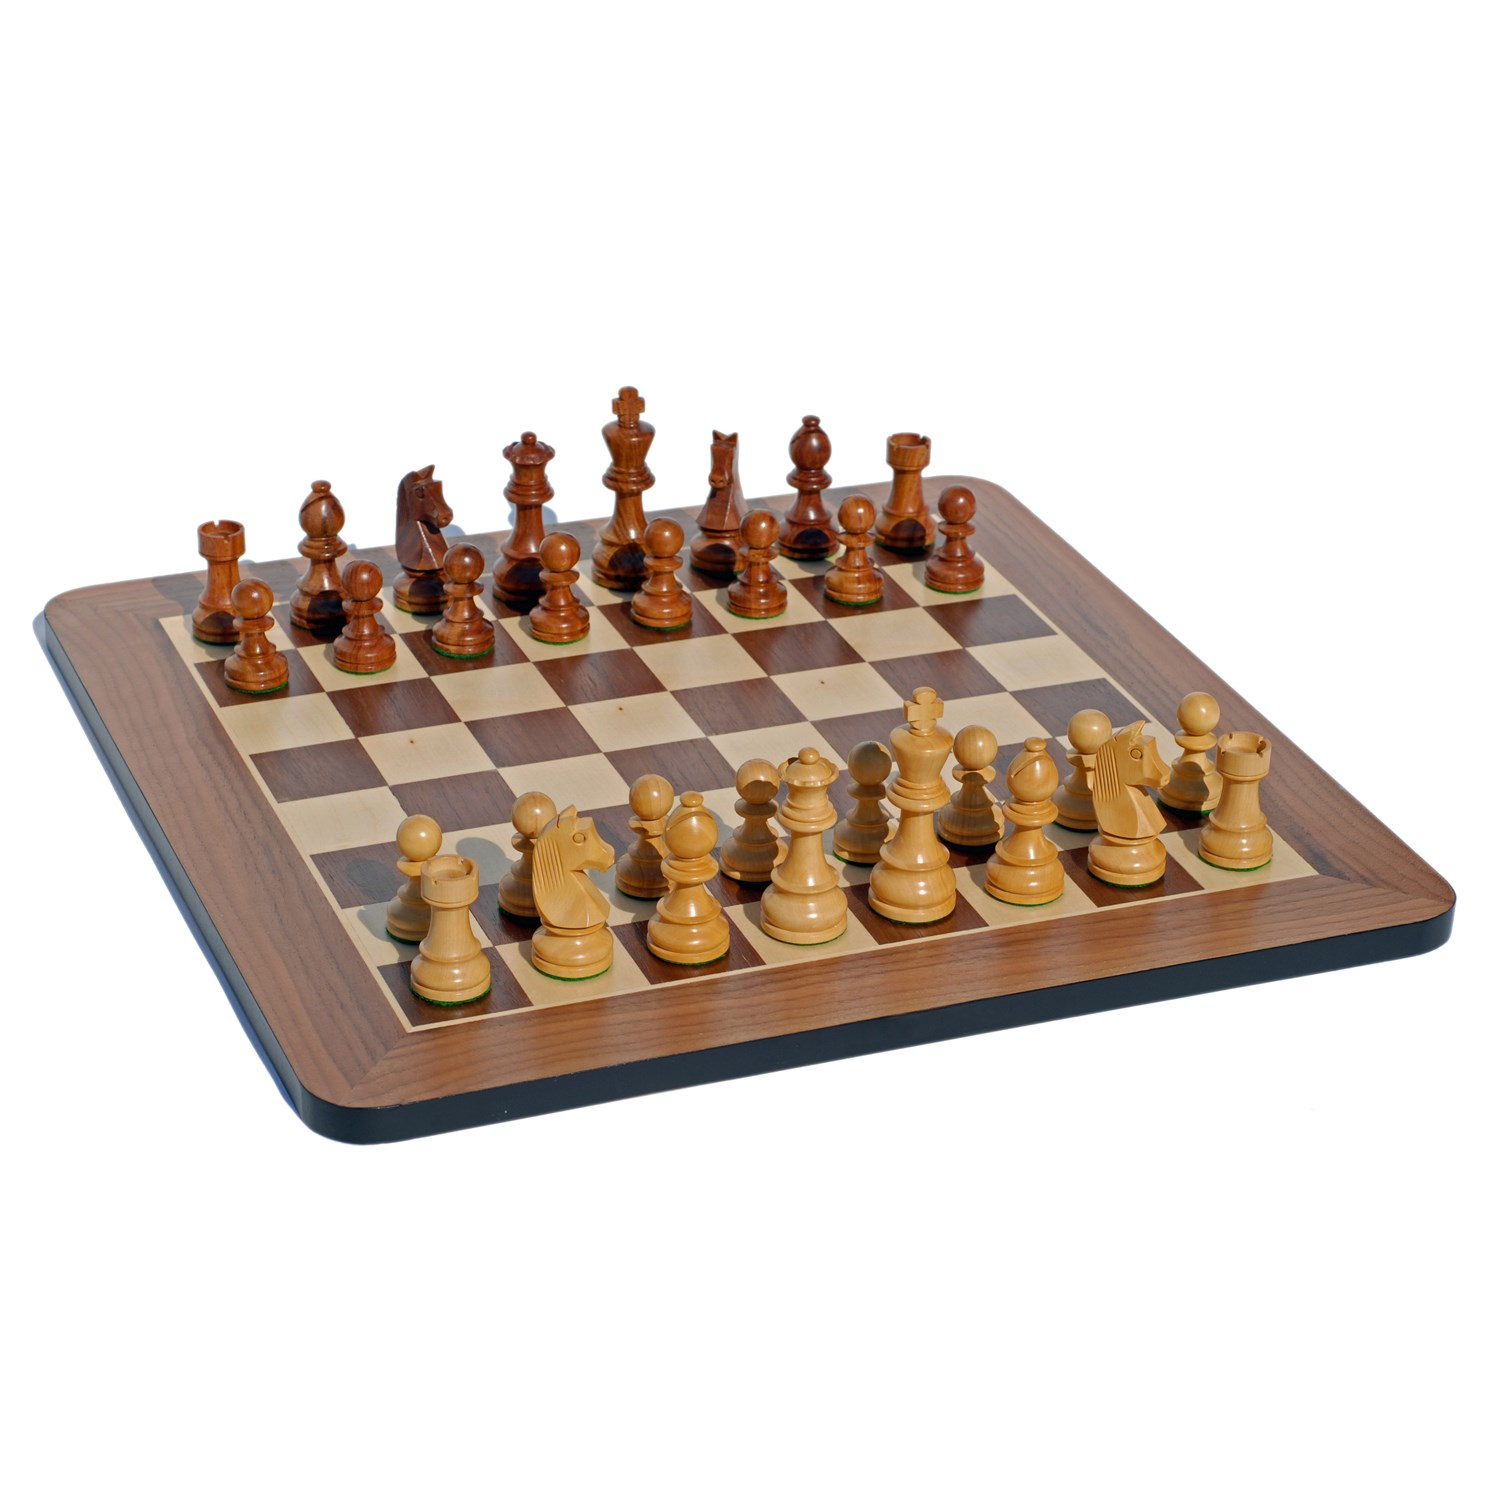 Grand Staunton Chess Set Tournament Size Weighted Pieces